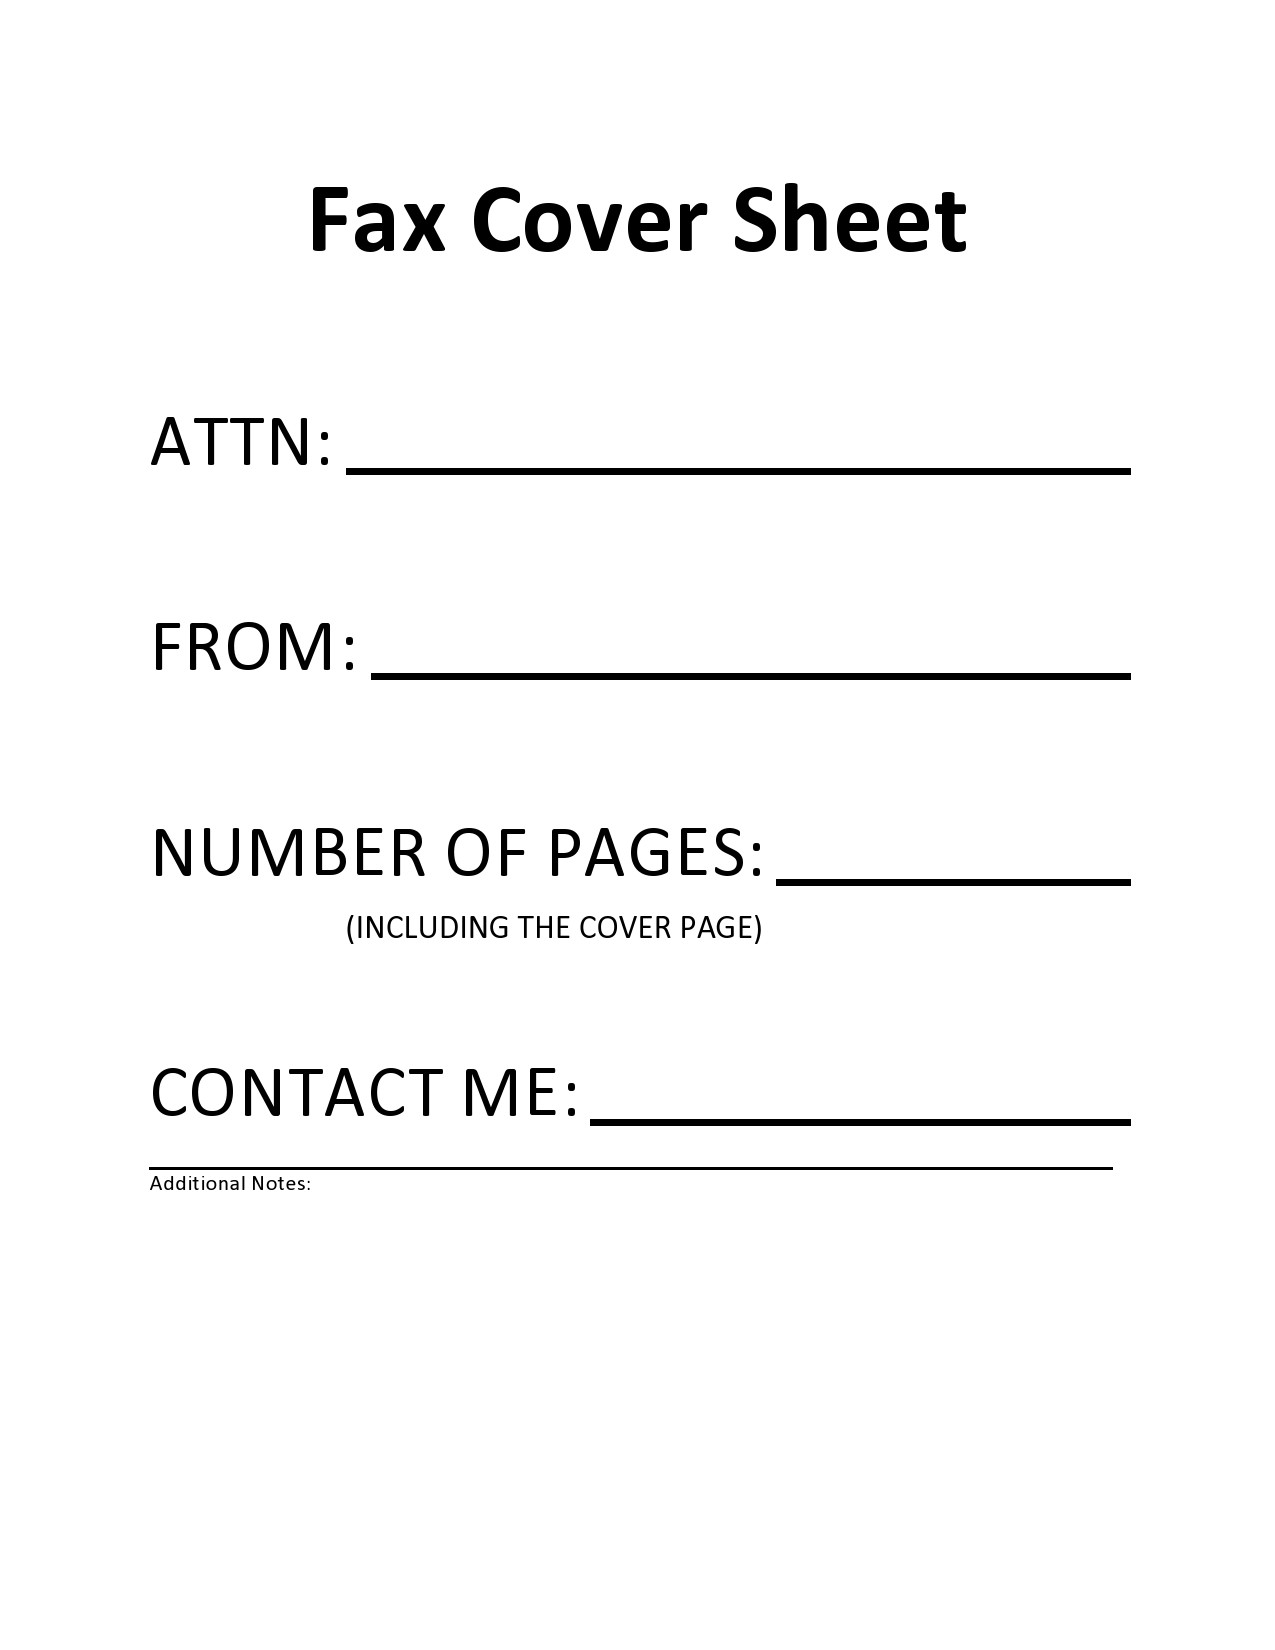 free fax cover sheet 33